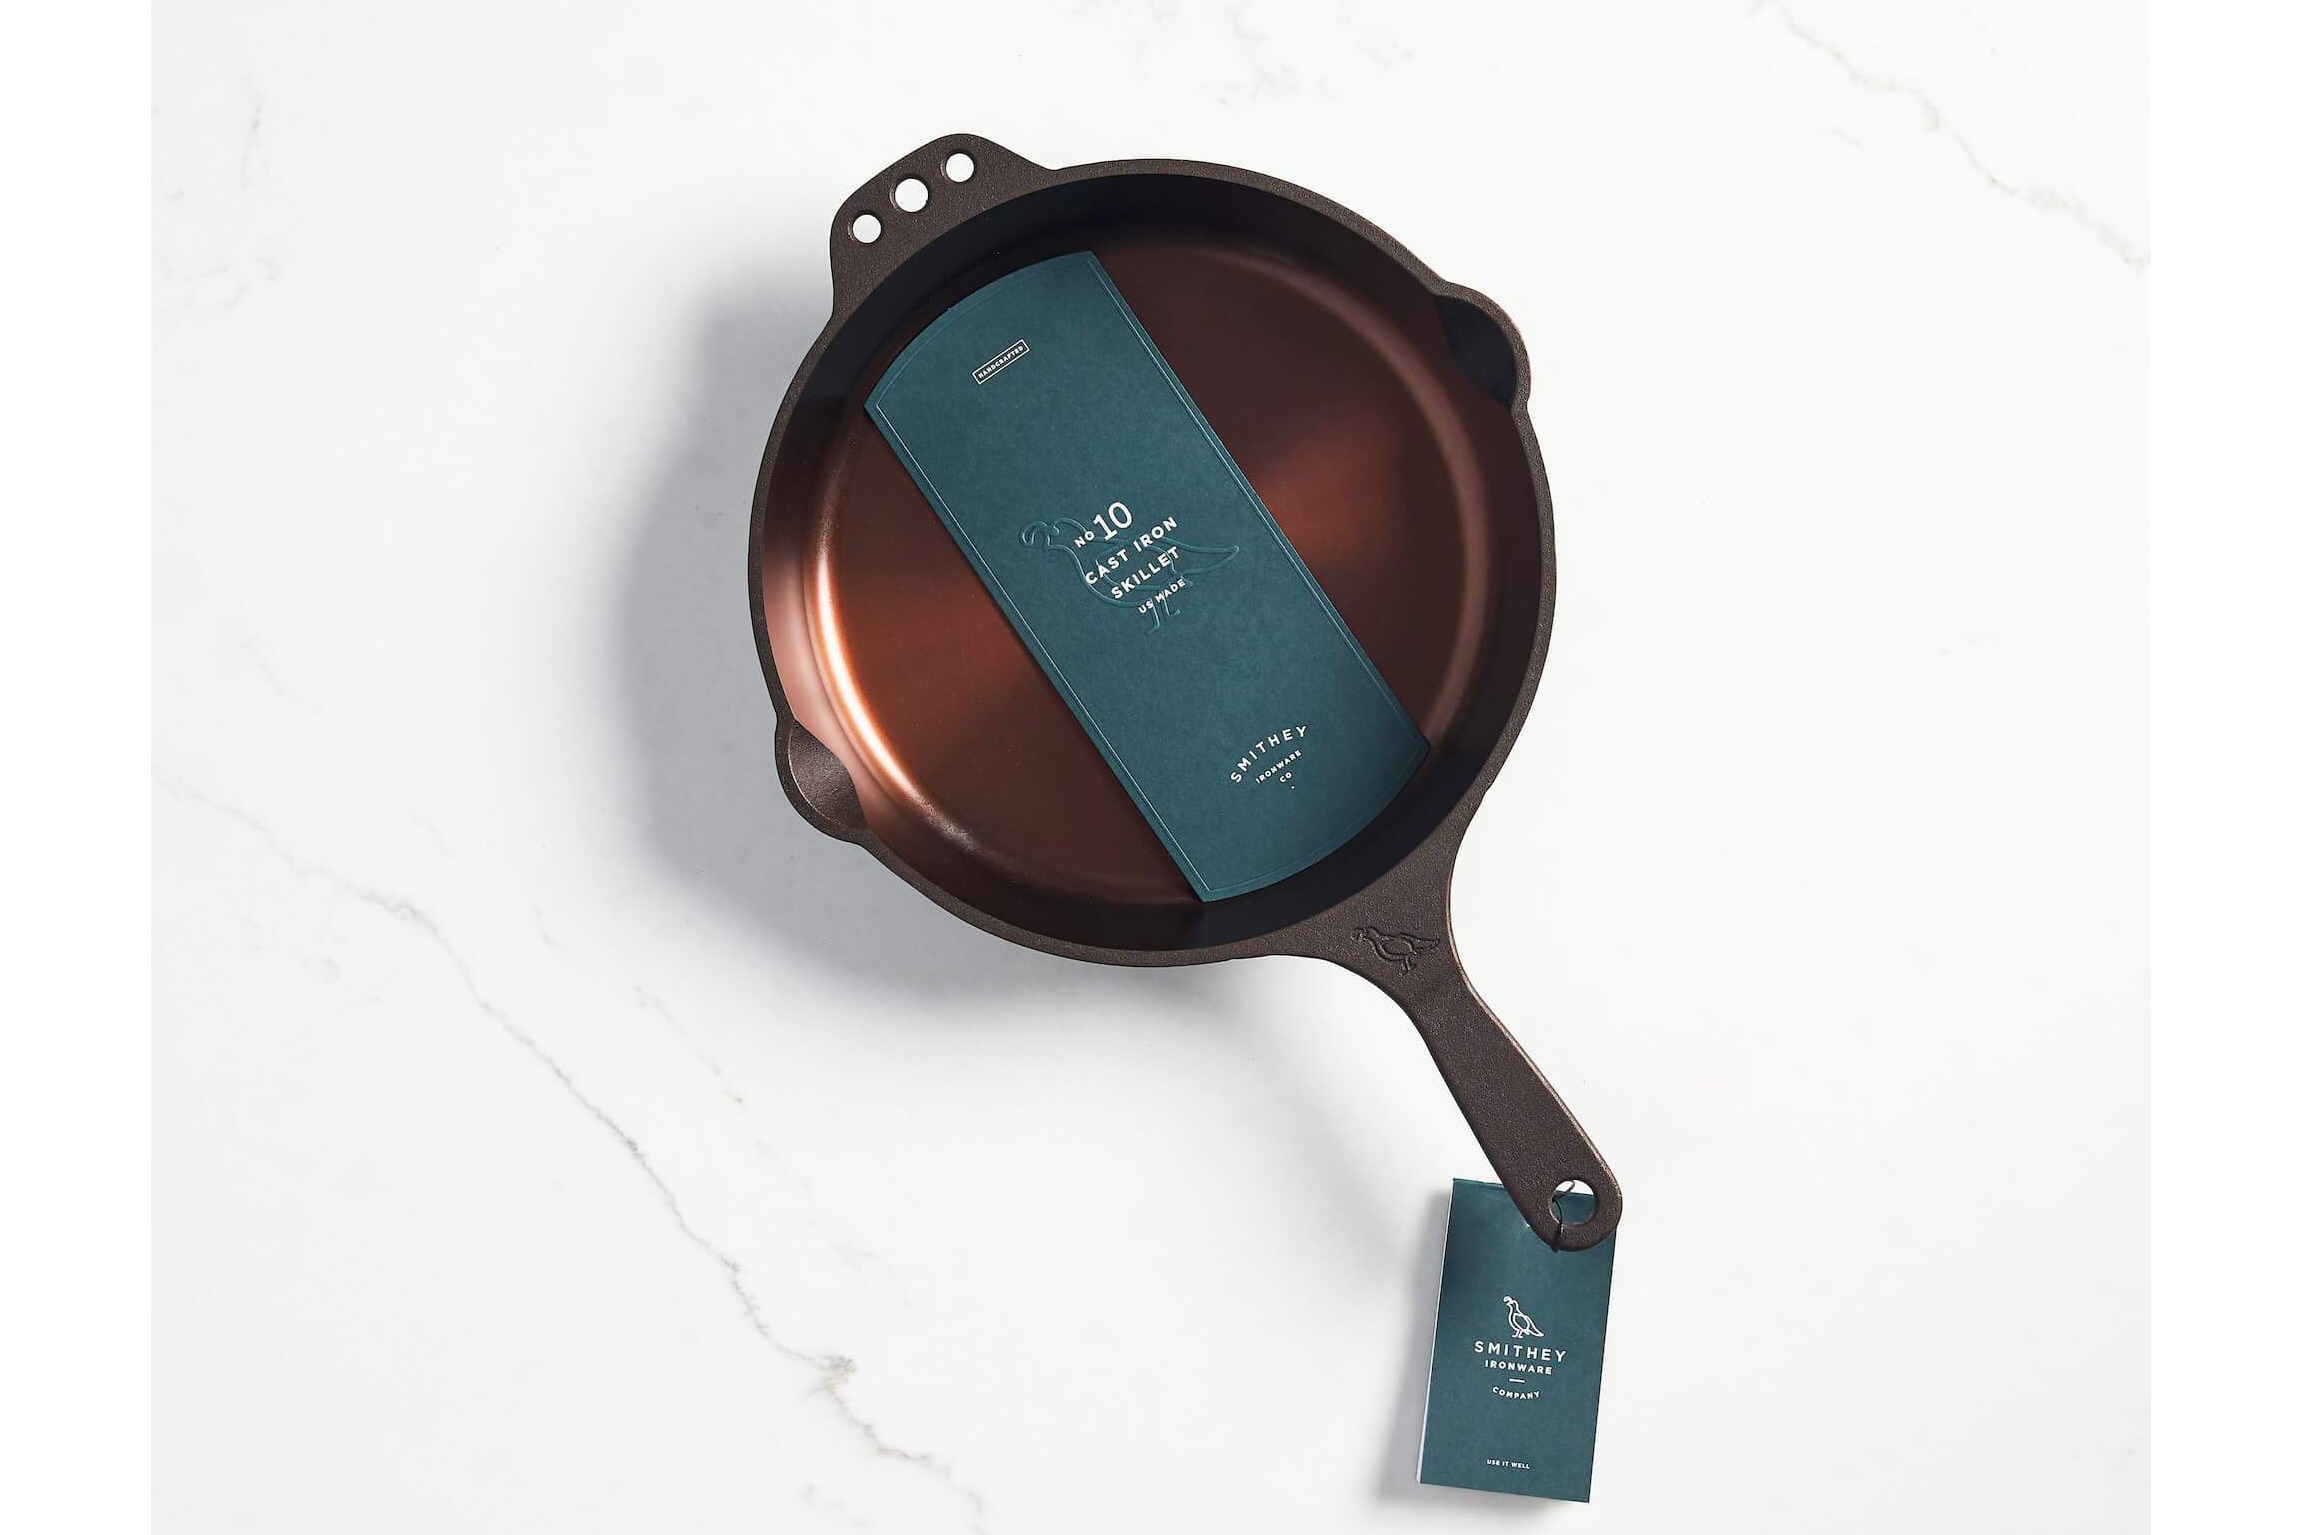 Smithey Ironware No. 10 Cast Iron Skillet on a marble background